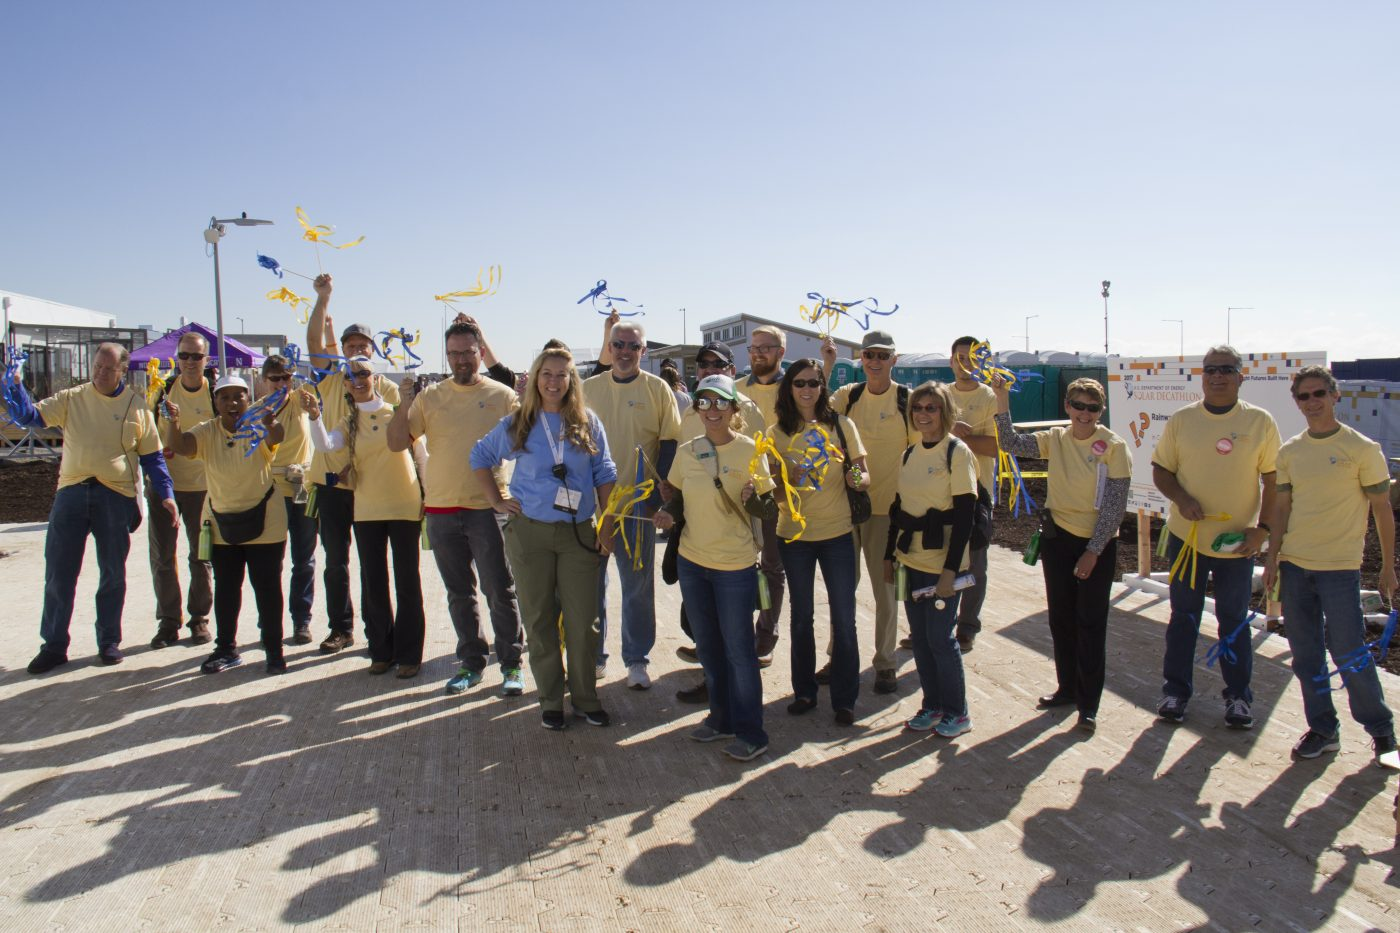 Solar Decathlon 2017 Volunteers, Credit: Garrett Bourcier:U.S. Department of Energy Solar Decathlon